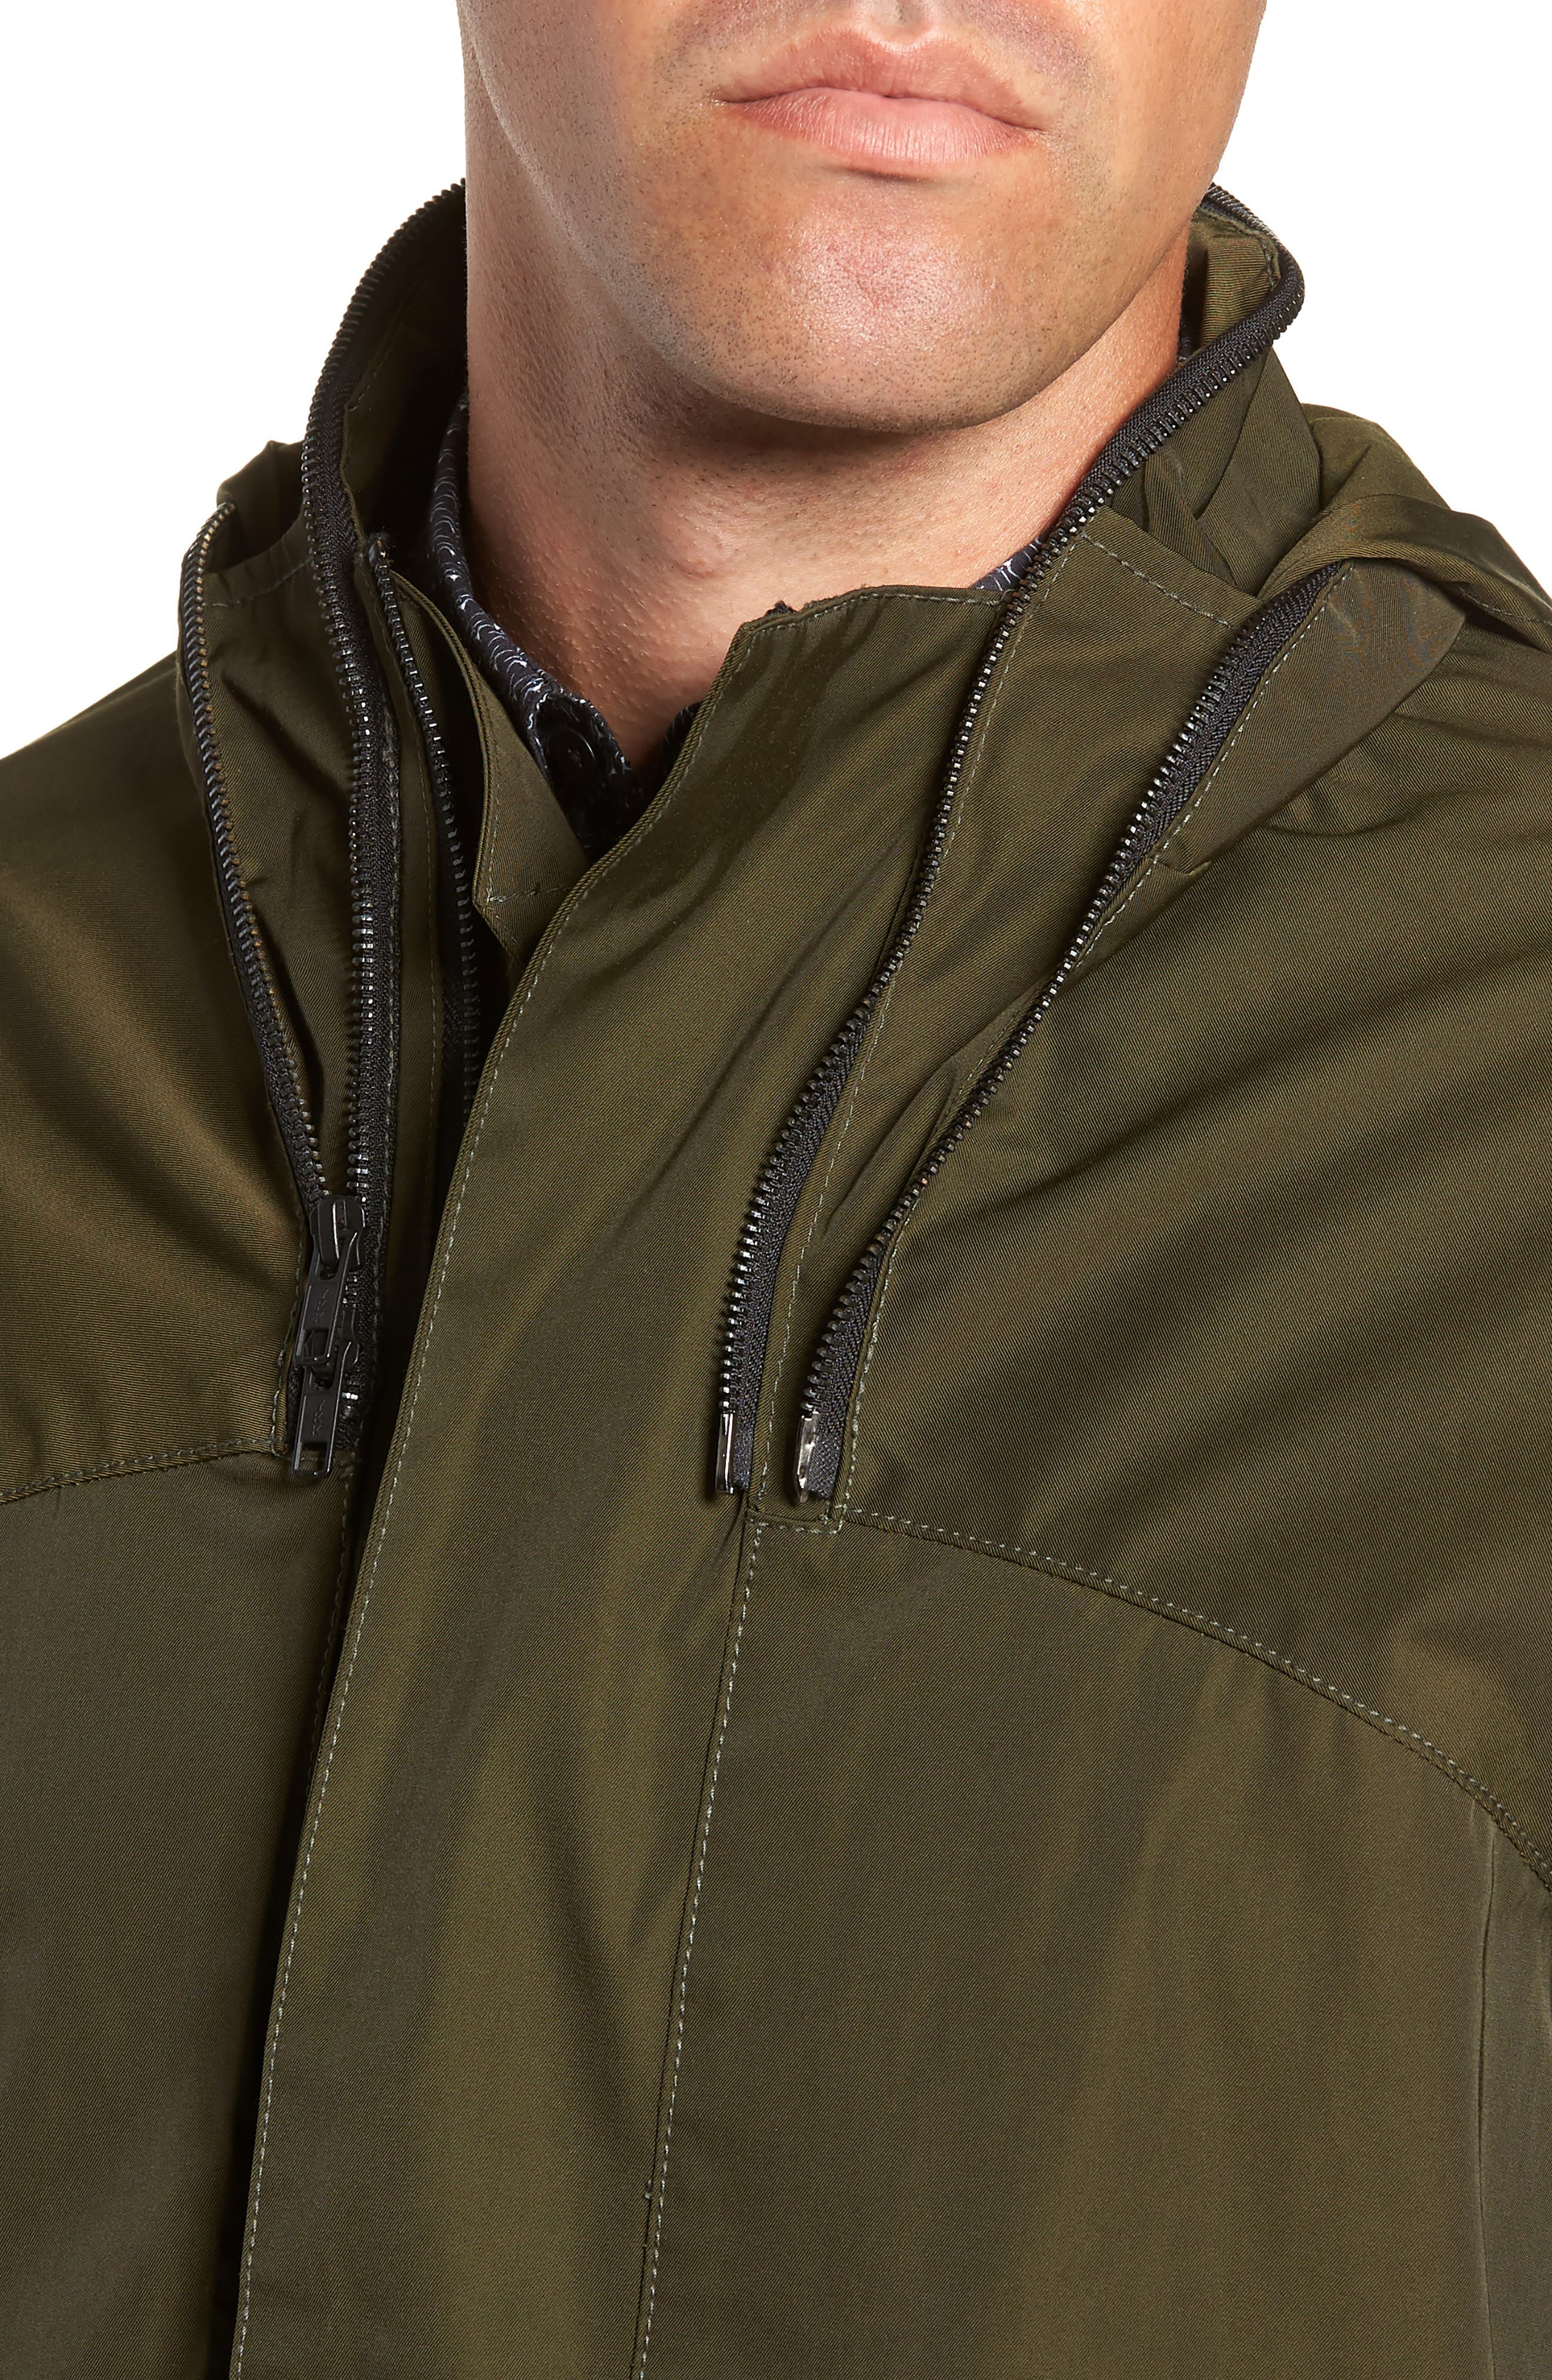 Slim Fit Delta Bomber Jacket,                             Alternate thumbnail 4, color,                             OLIVE